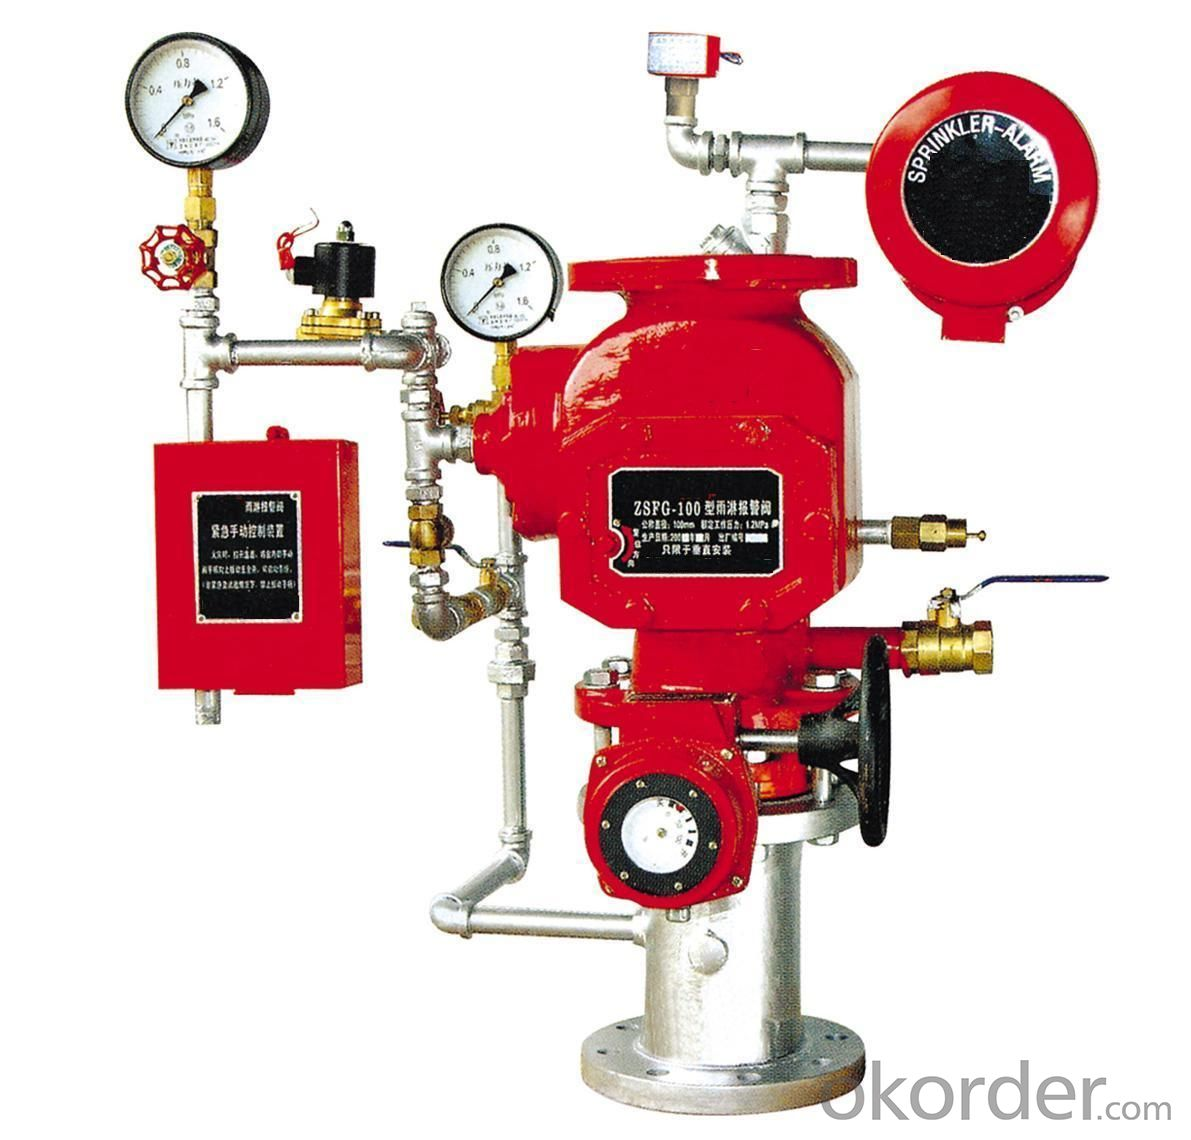 Alarm check valve cad drawing for Fire sprinkler system cost calculator